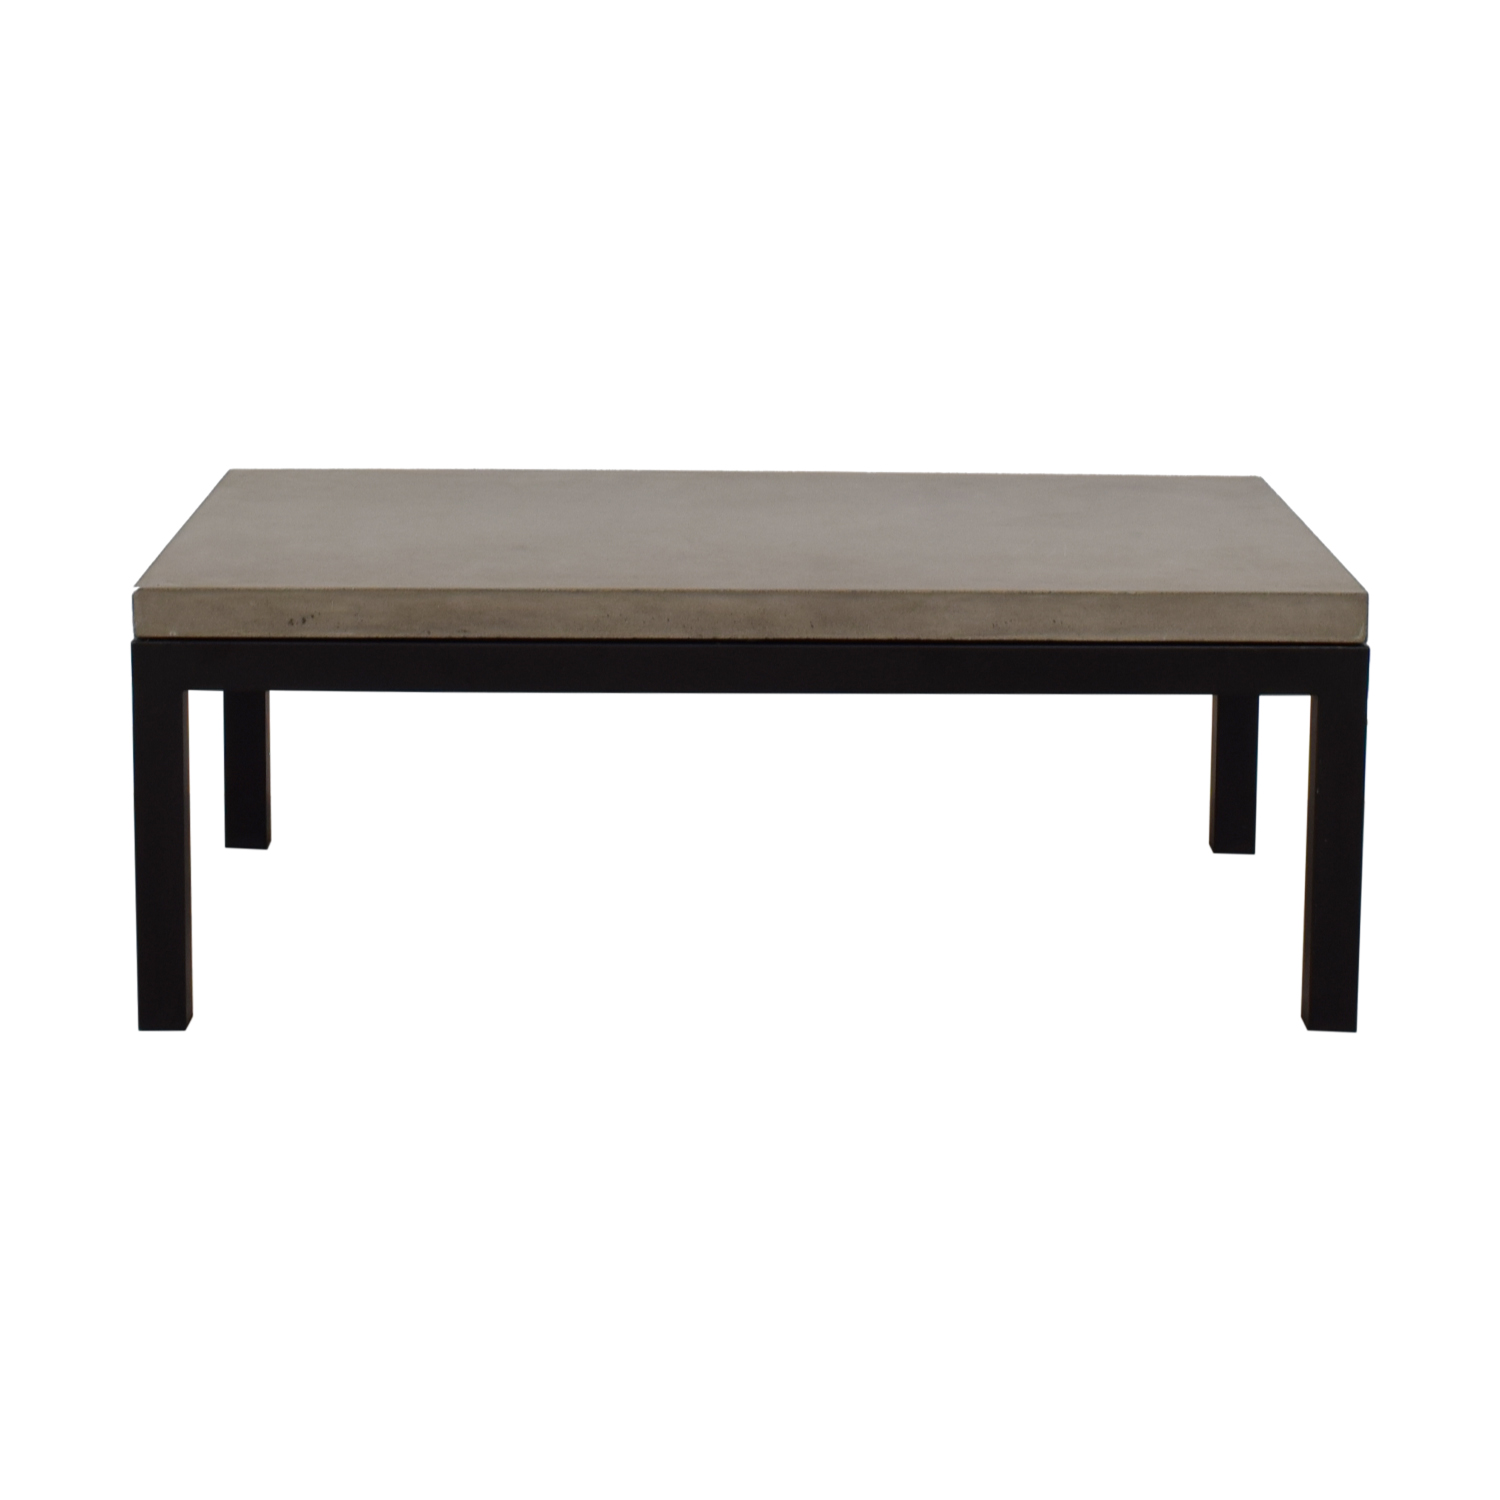 Crate & Barrel Crate & Barrel Parsons Concrete Top Dark Steel Base Small Rectangular Coffee Table nyc